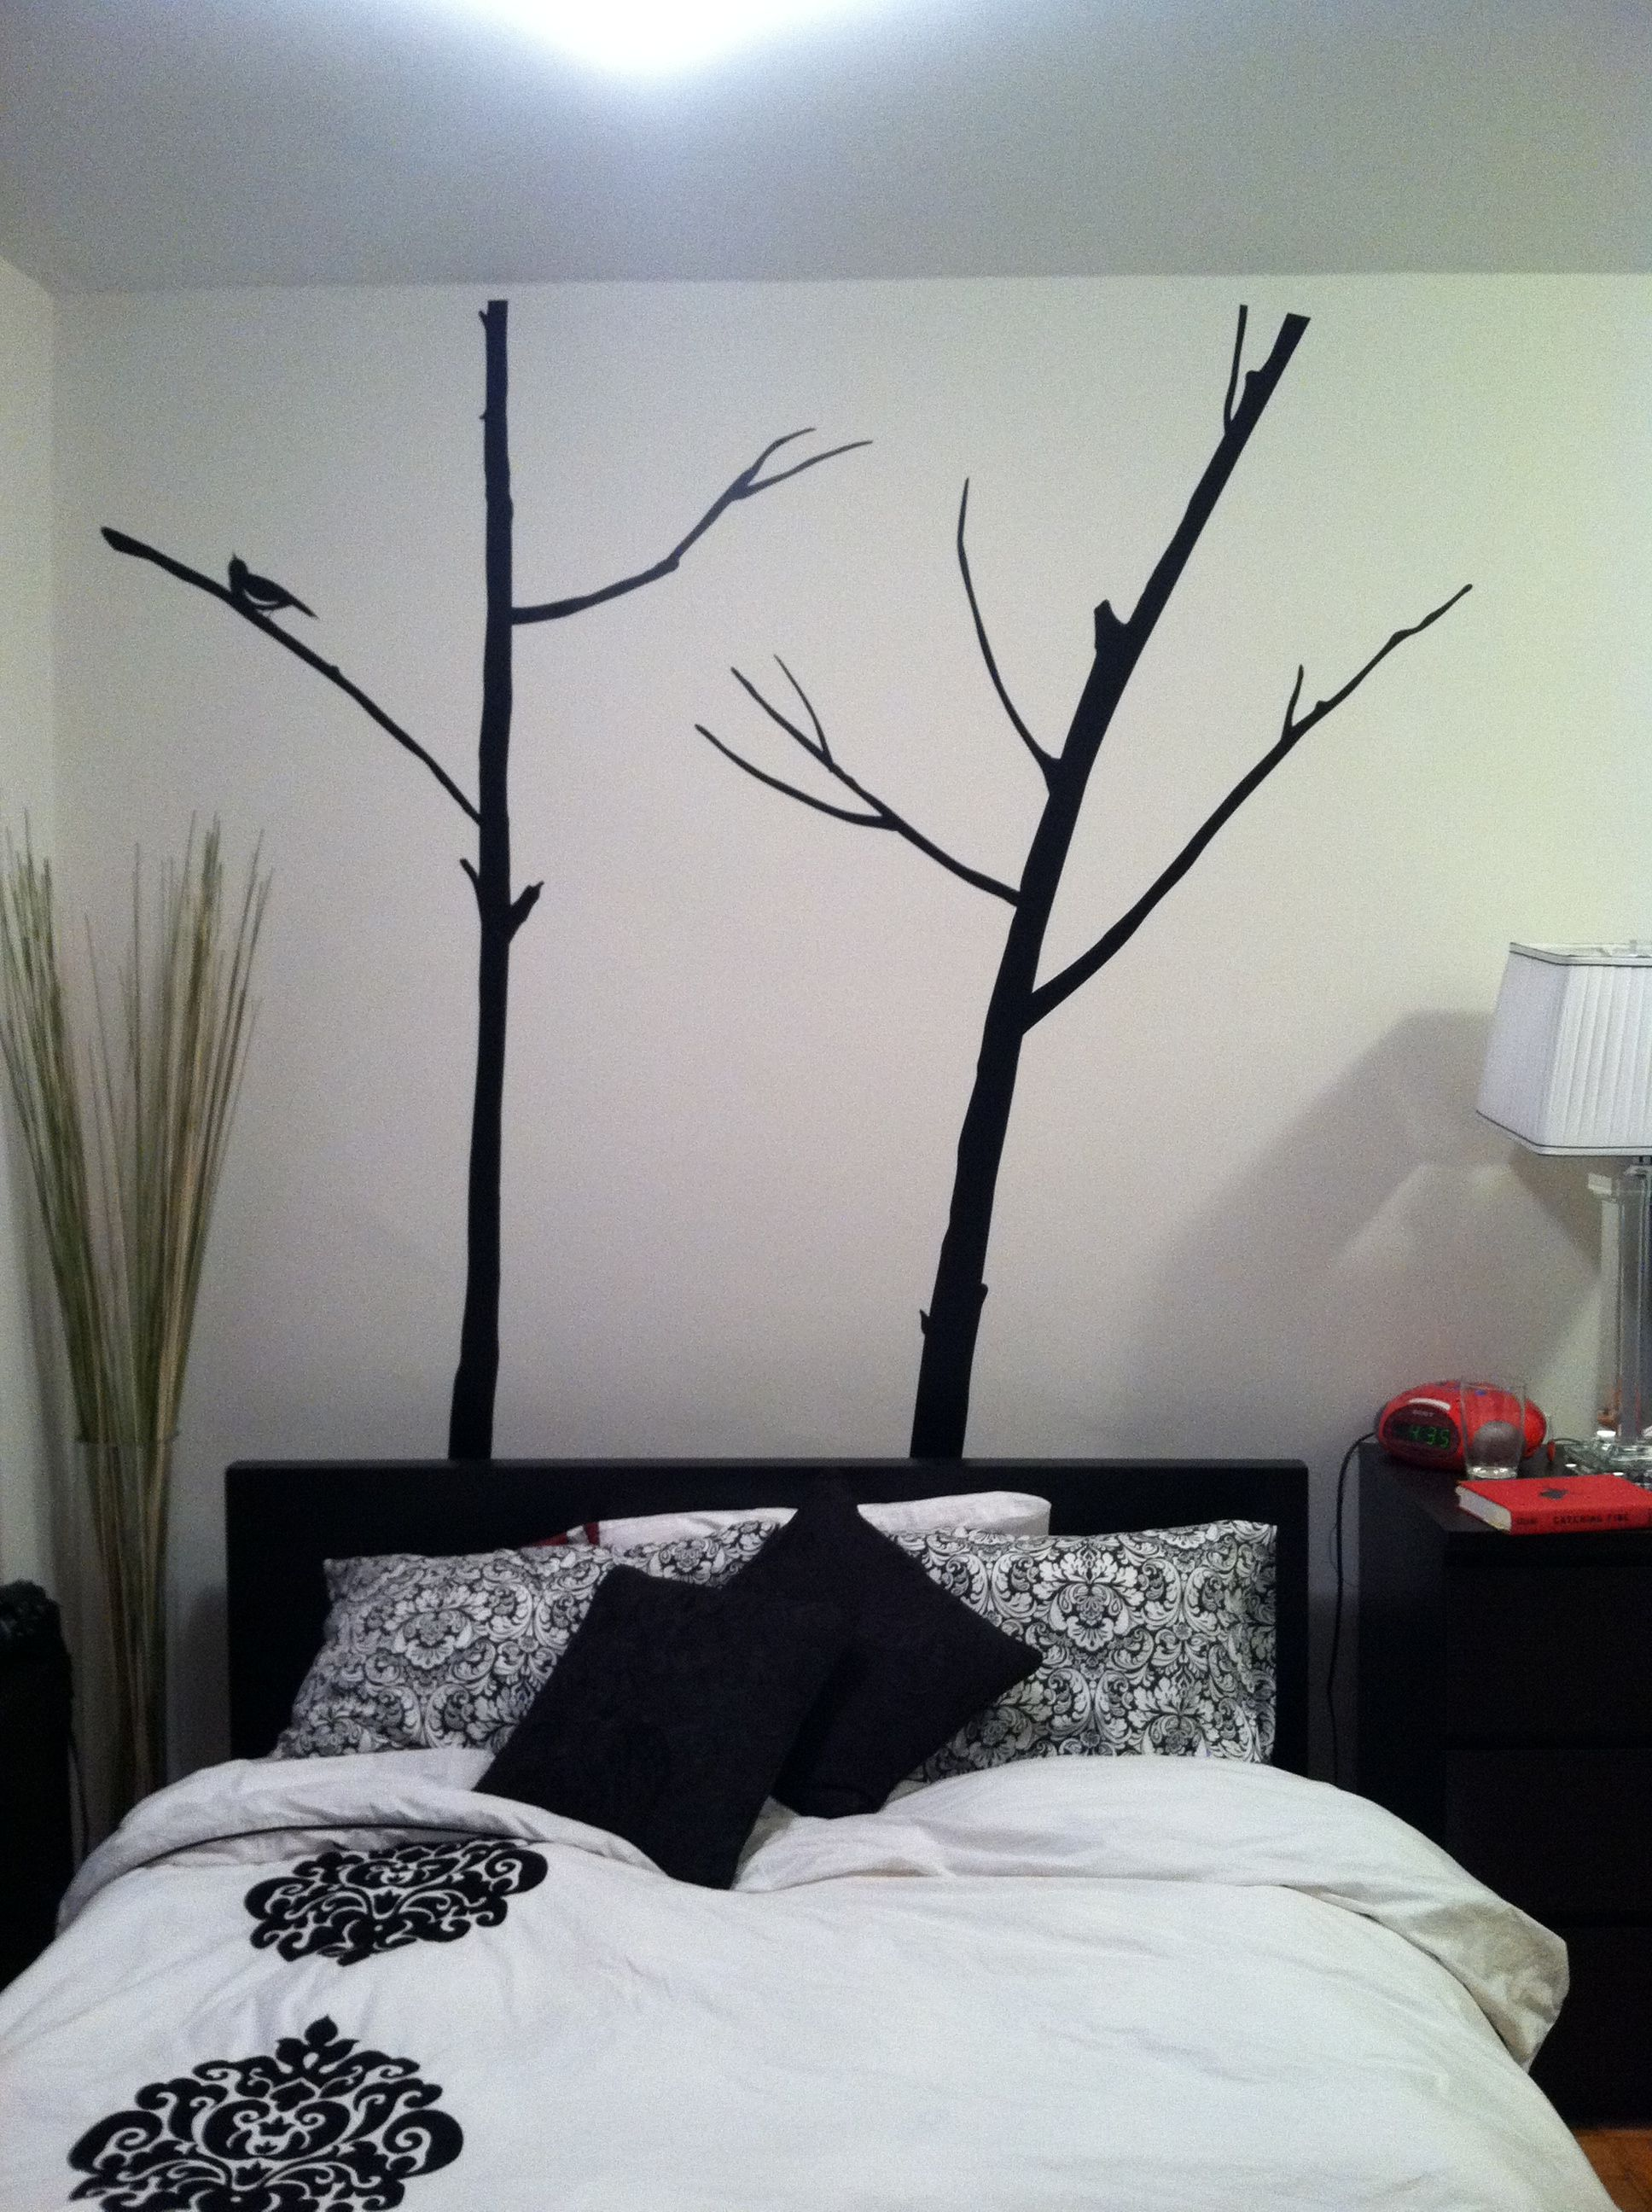 Finally Put Up My Tree Wall Decals For The Home Pinterest - How to put up a tree wall decal